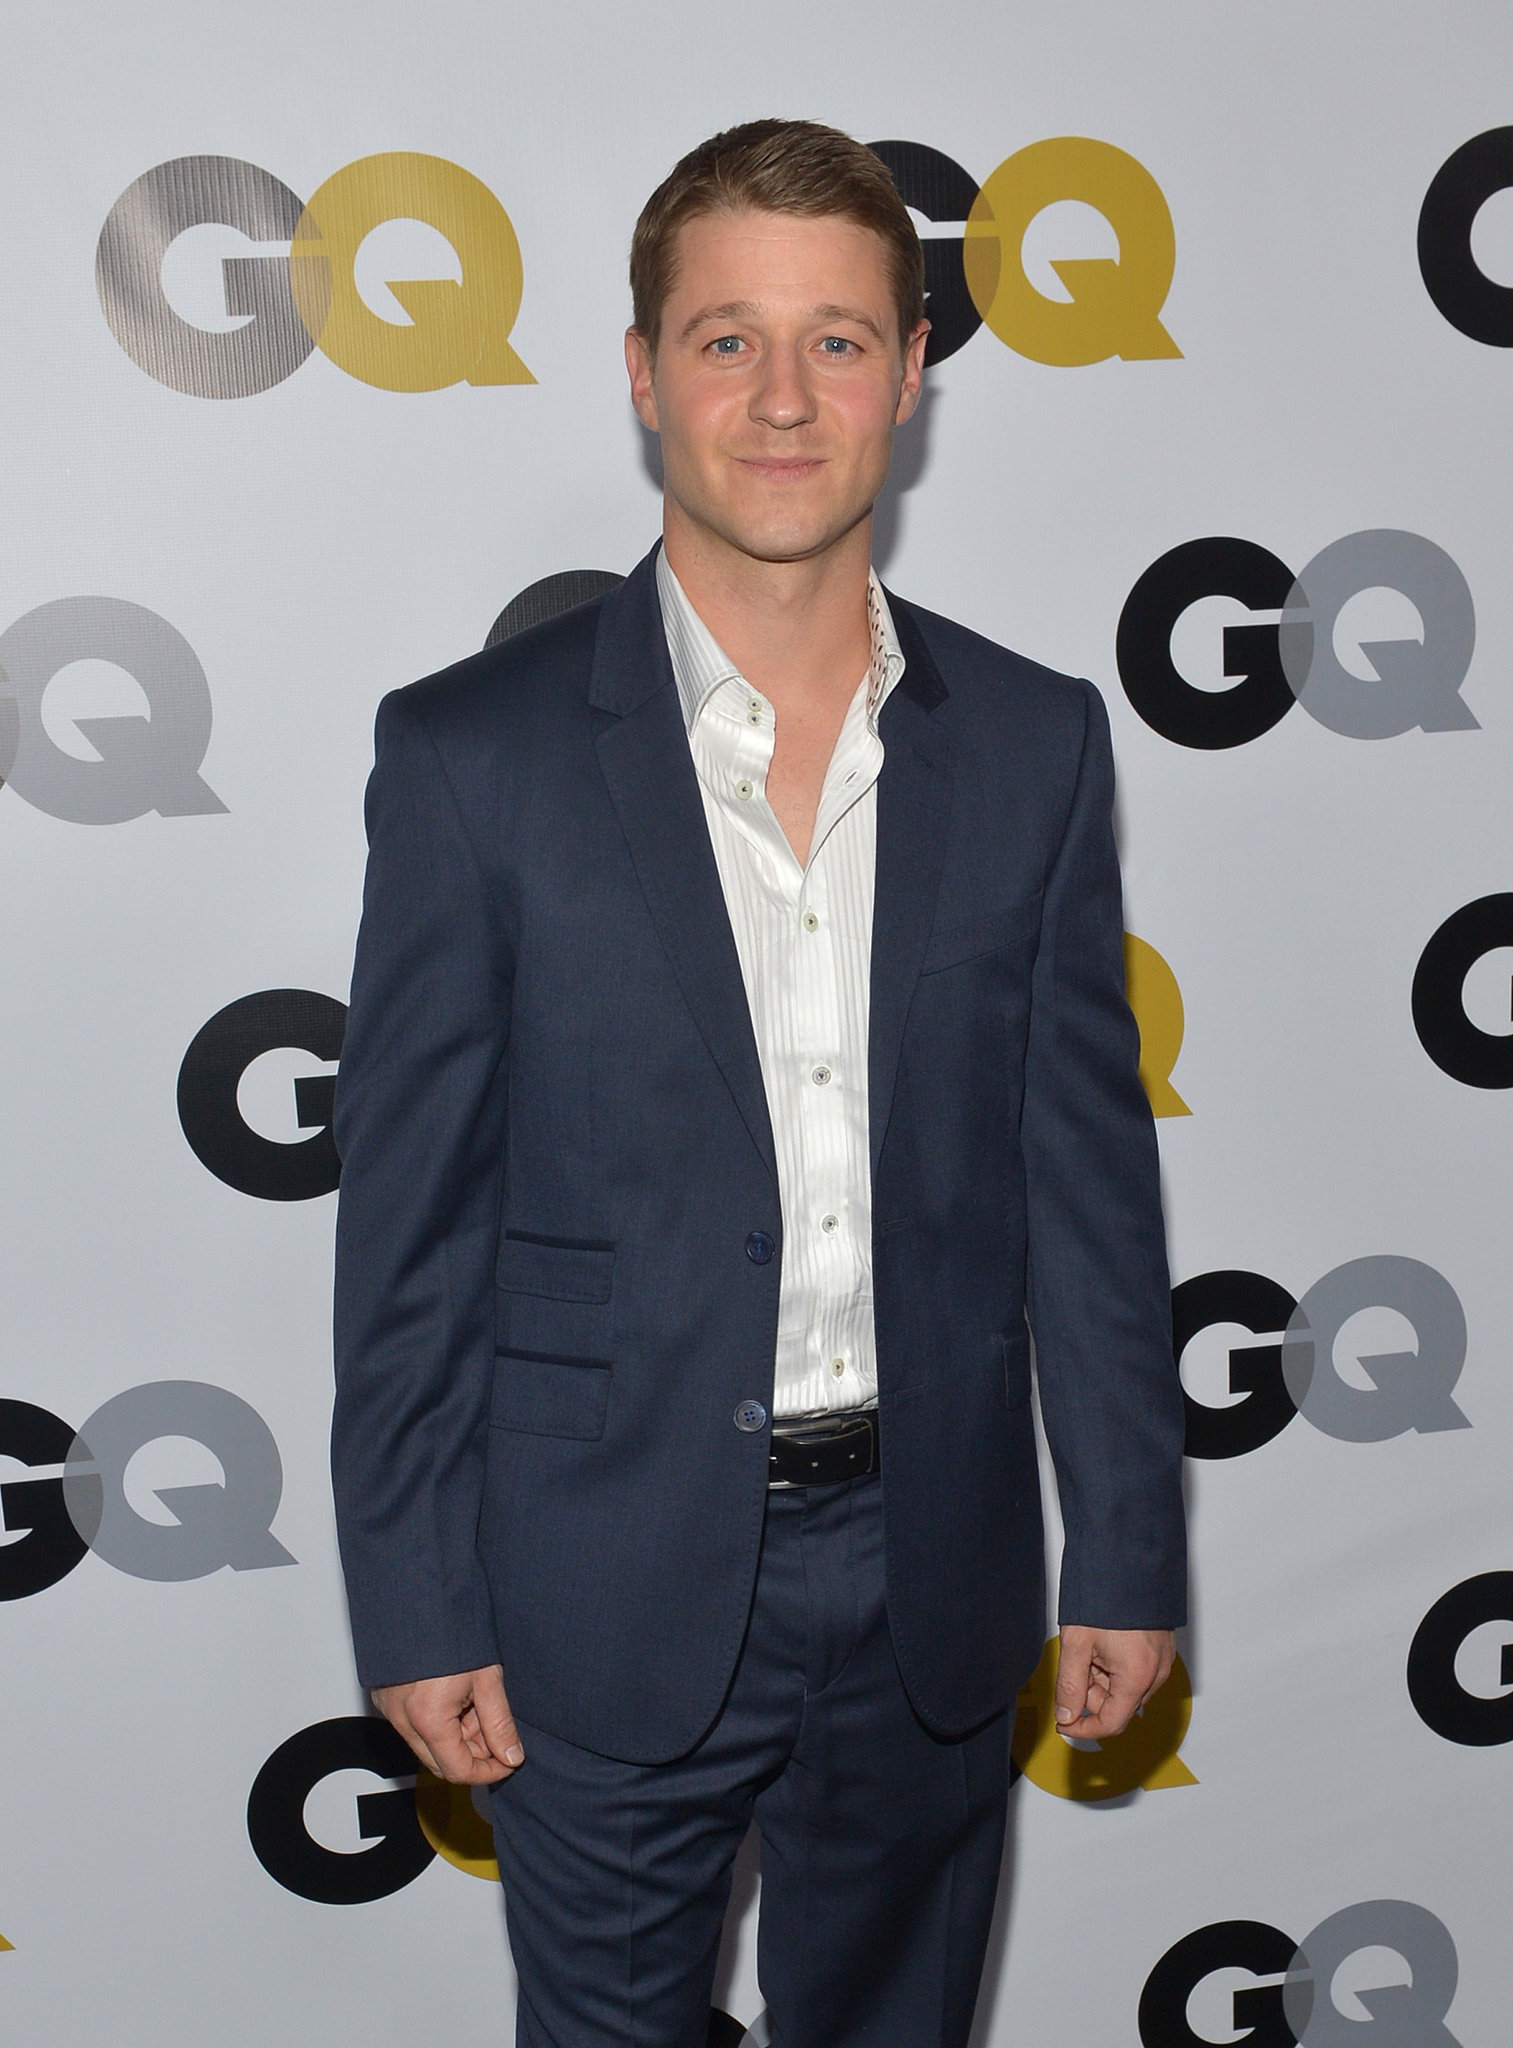 Ben McKenzie hit the red carpet in a dark blue suit.